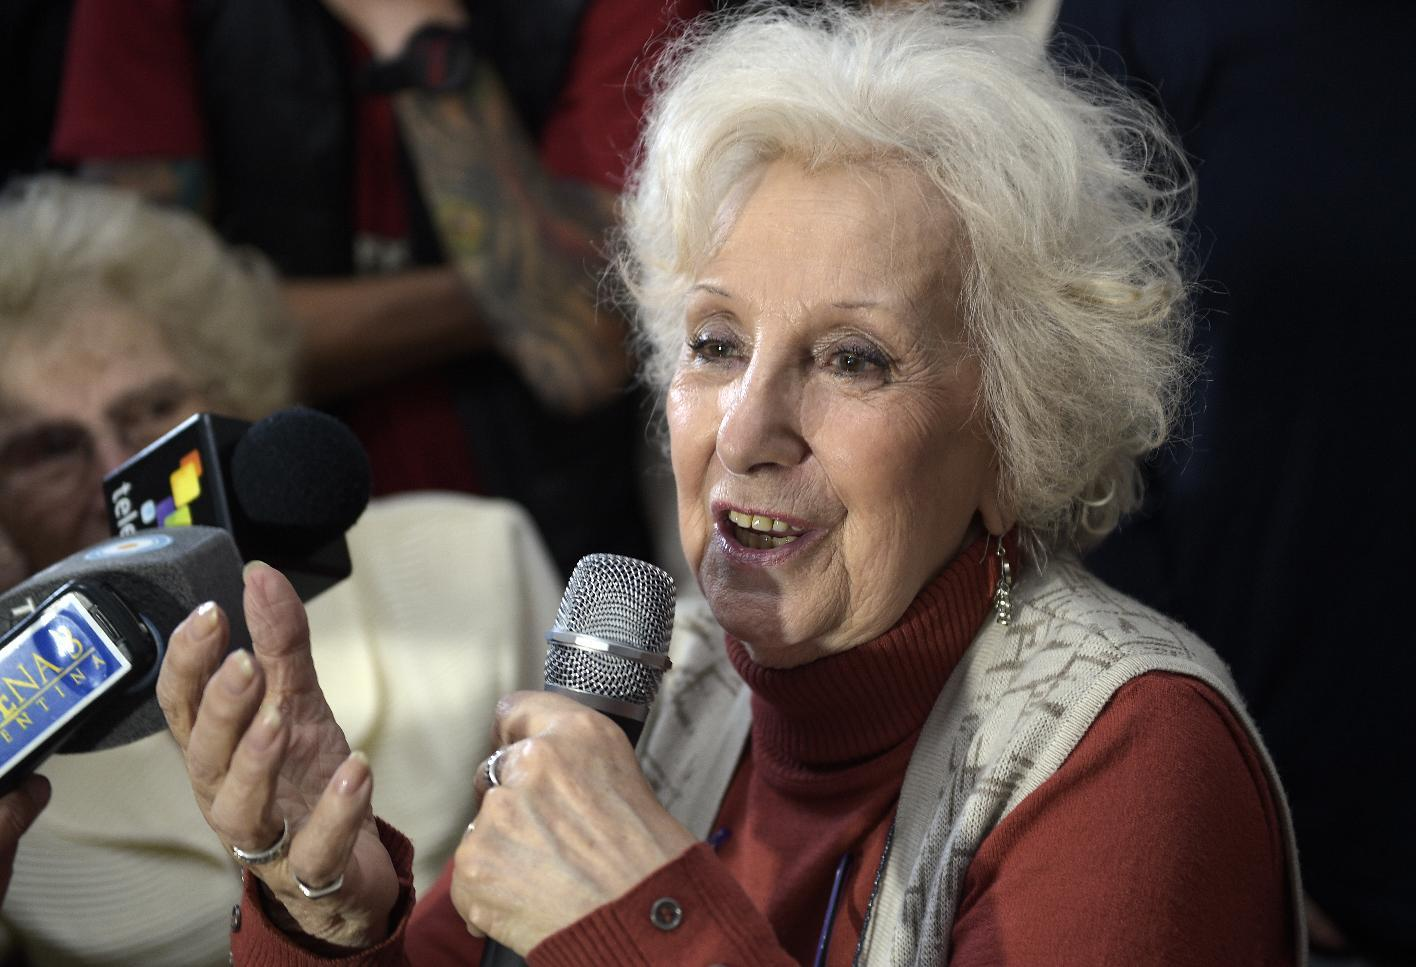 Estela de Carlotto, the president of Grandmothers of Plaza de Mayo, which seeks to reunite babies stolen during the regime (1976-1983) with their biological parents or relatives, announces the recovery of her grandson in Buenos Aires, August 5, 2014 (AFP Photo/Ezequiel Amigo)